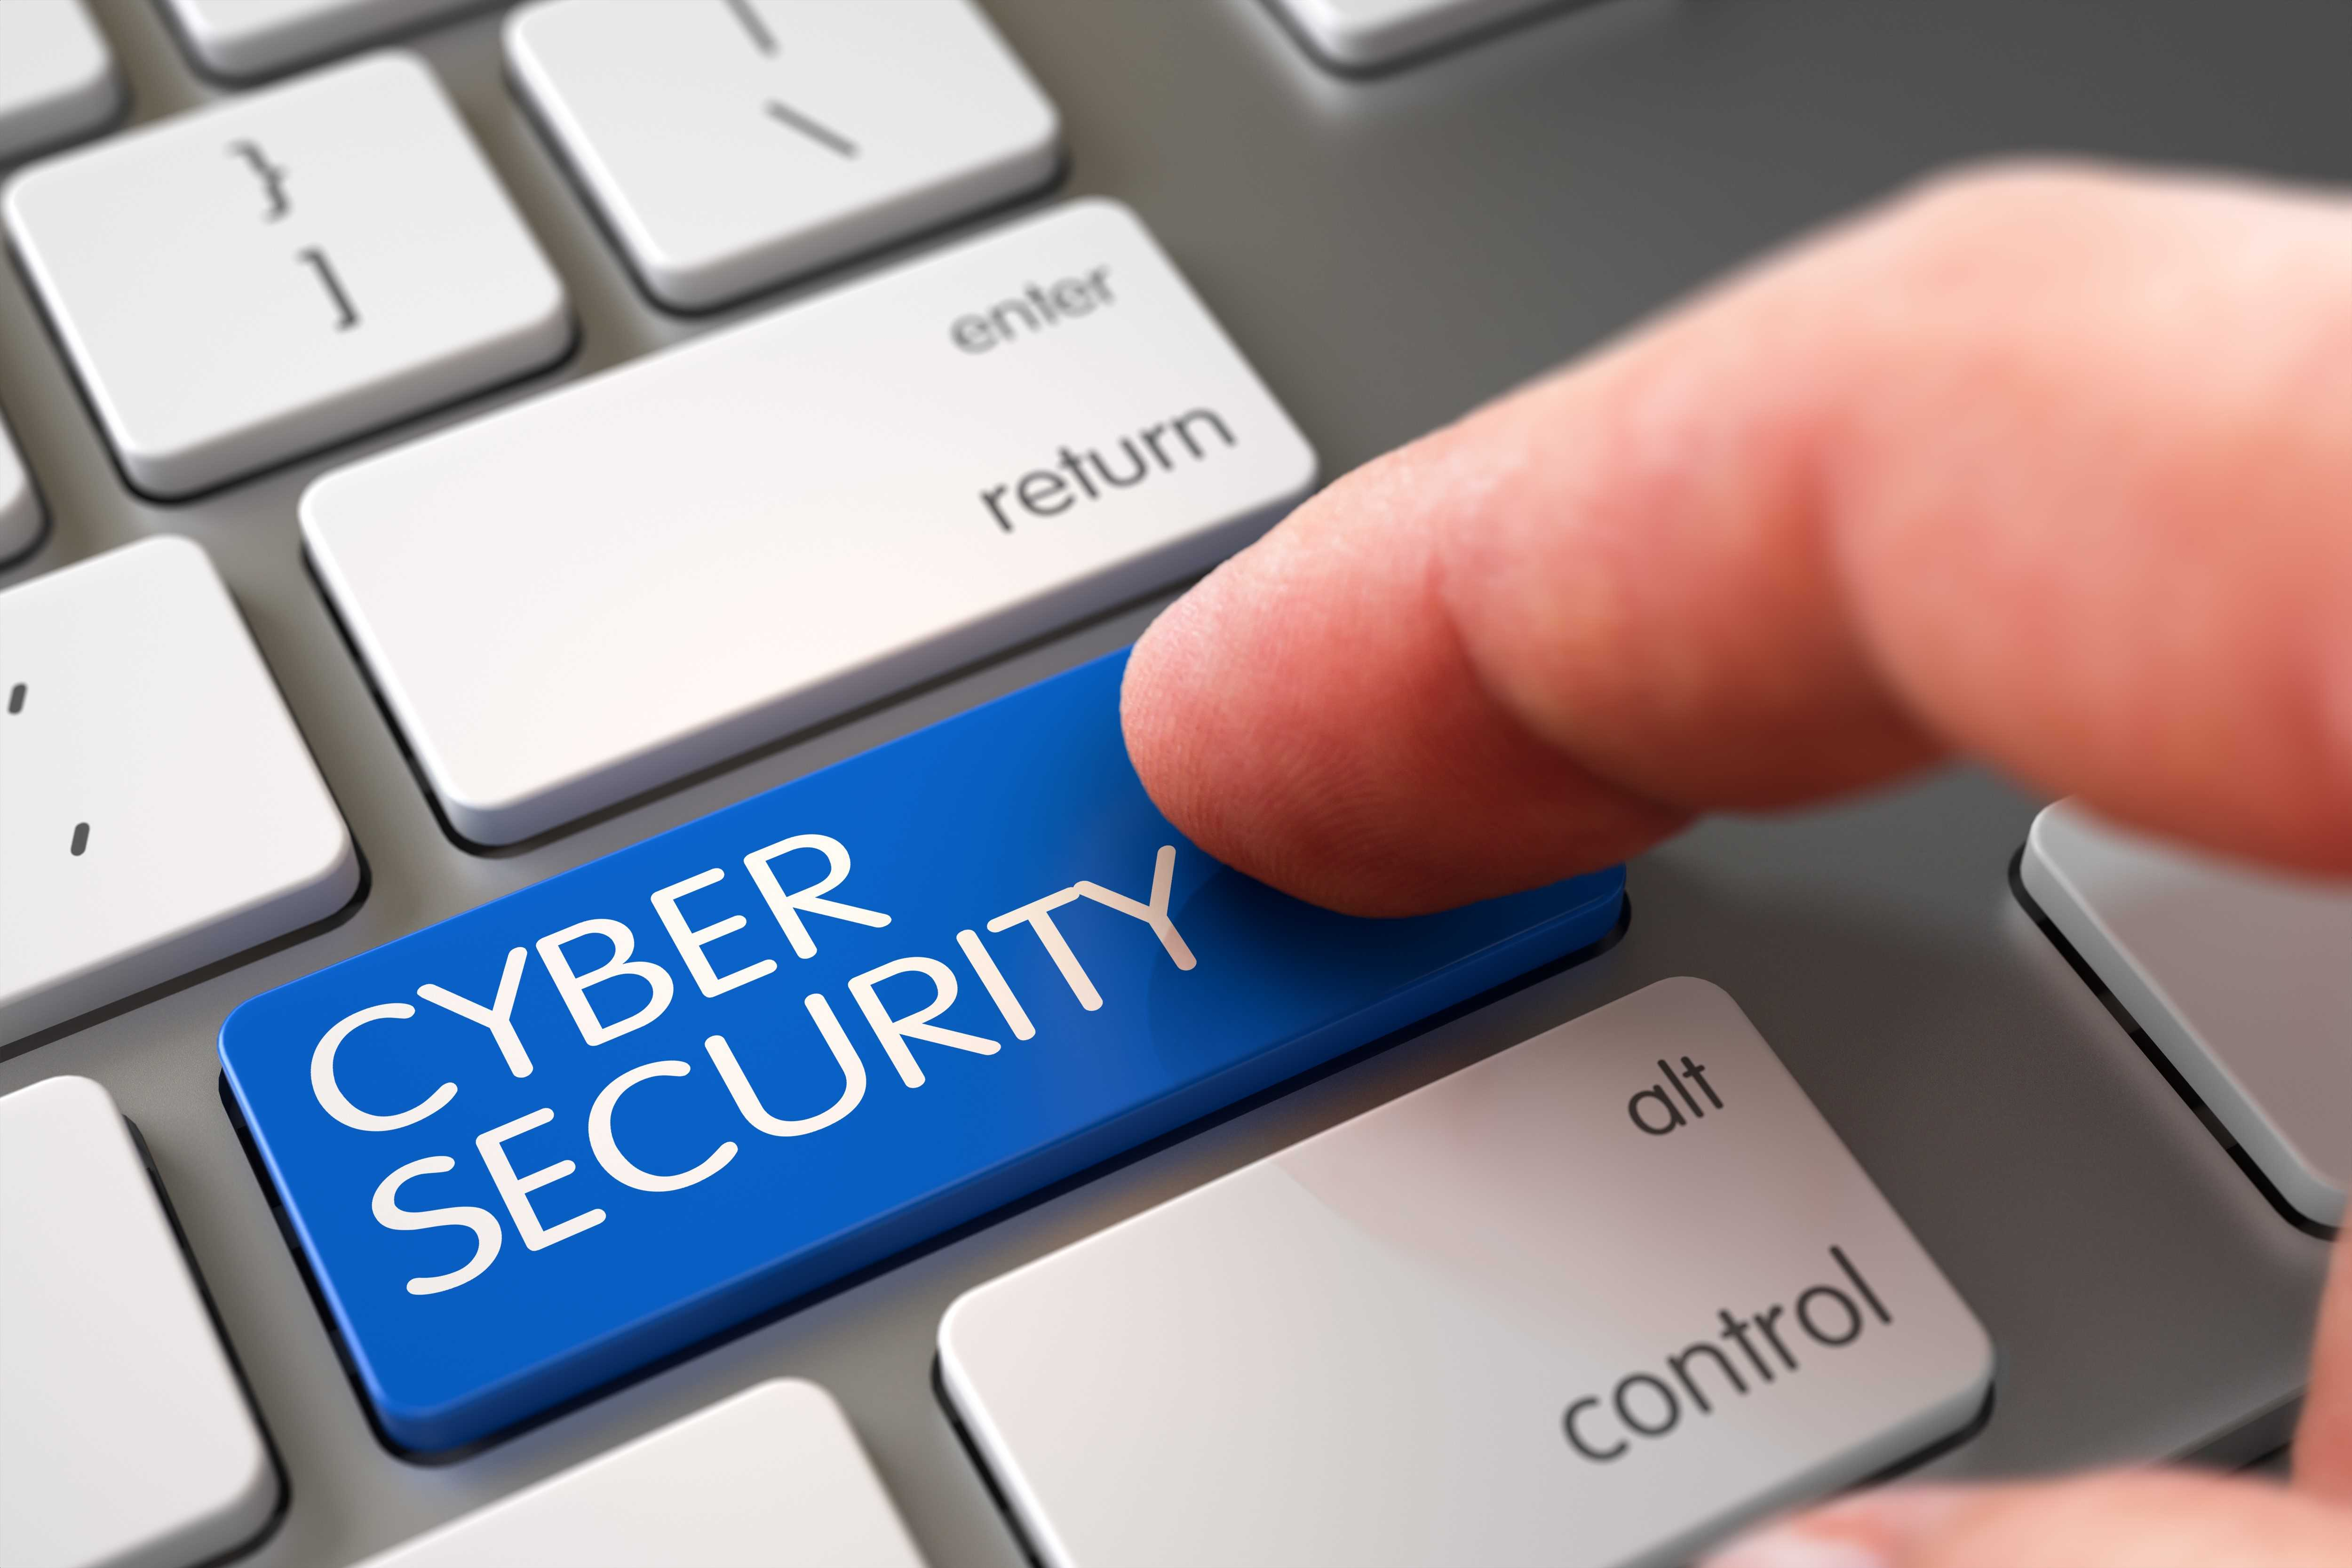 Innovation Awards key in on cyber security